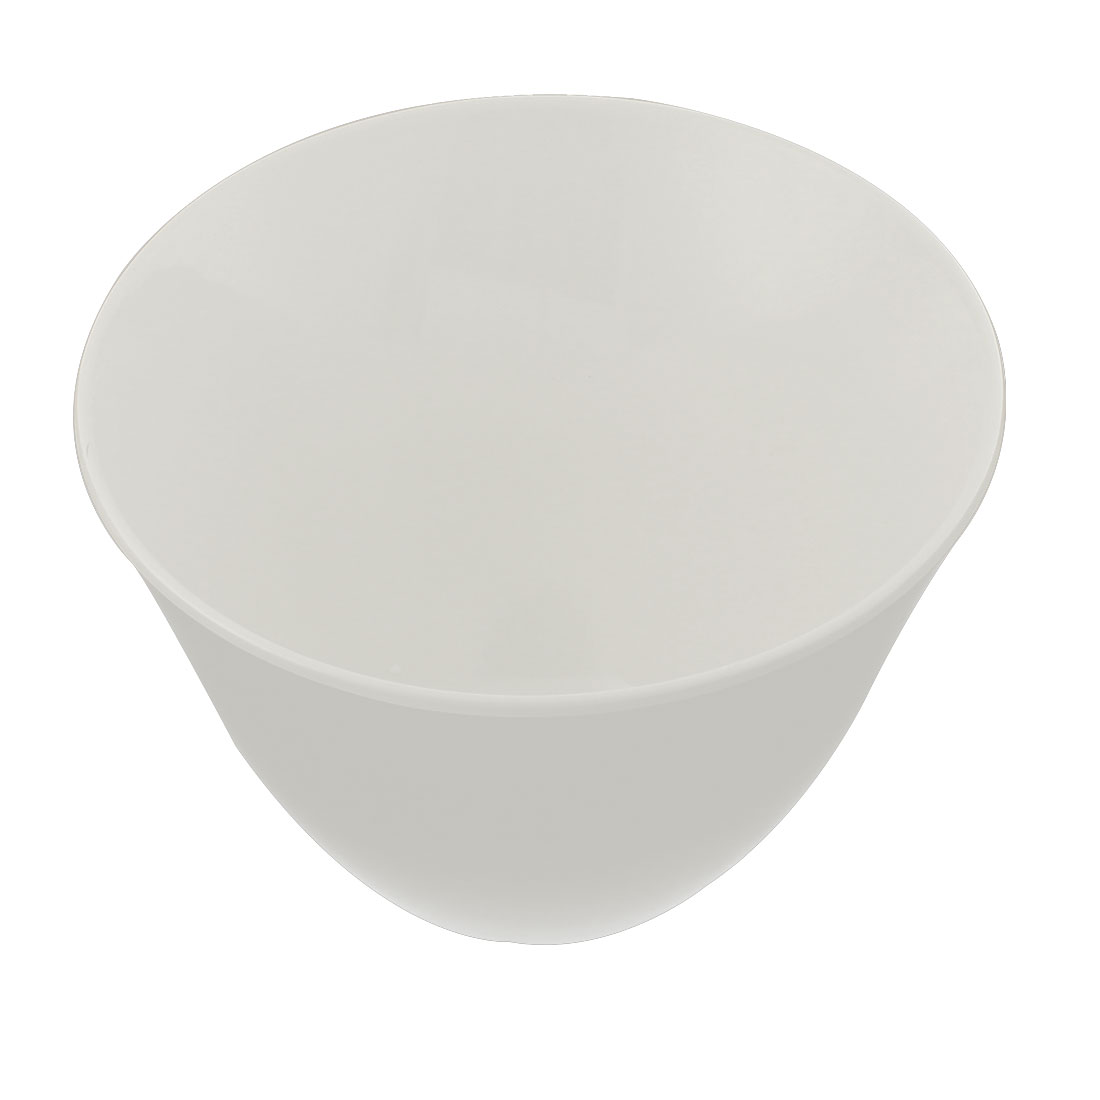 Home Restaurant Plastic Tall Slant Cut Bowl 20cm x 8.5cm